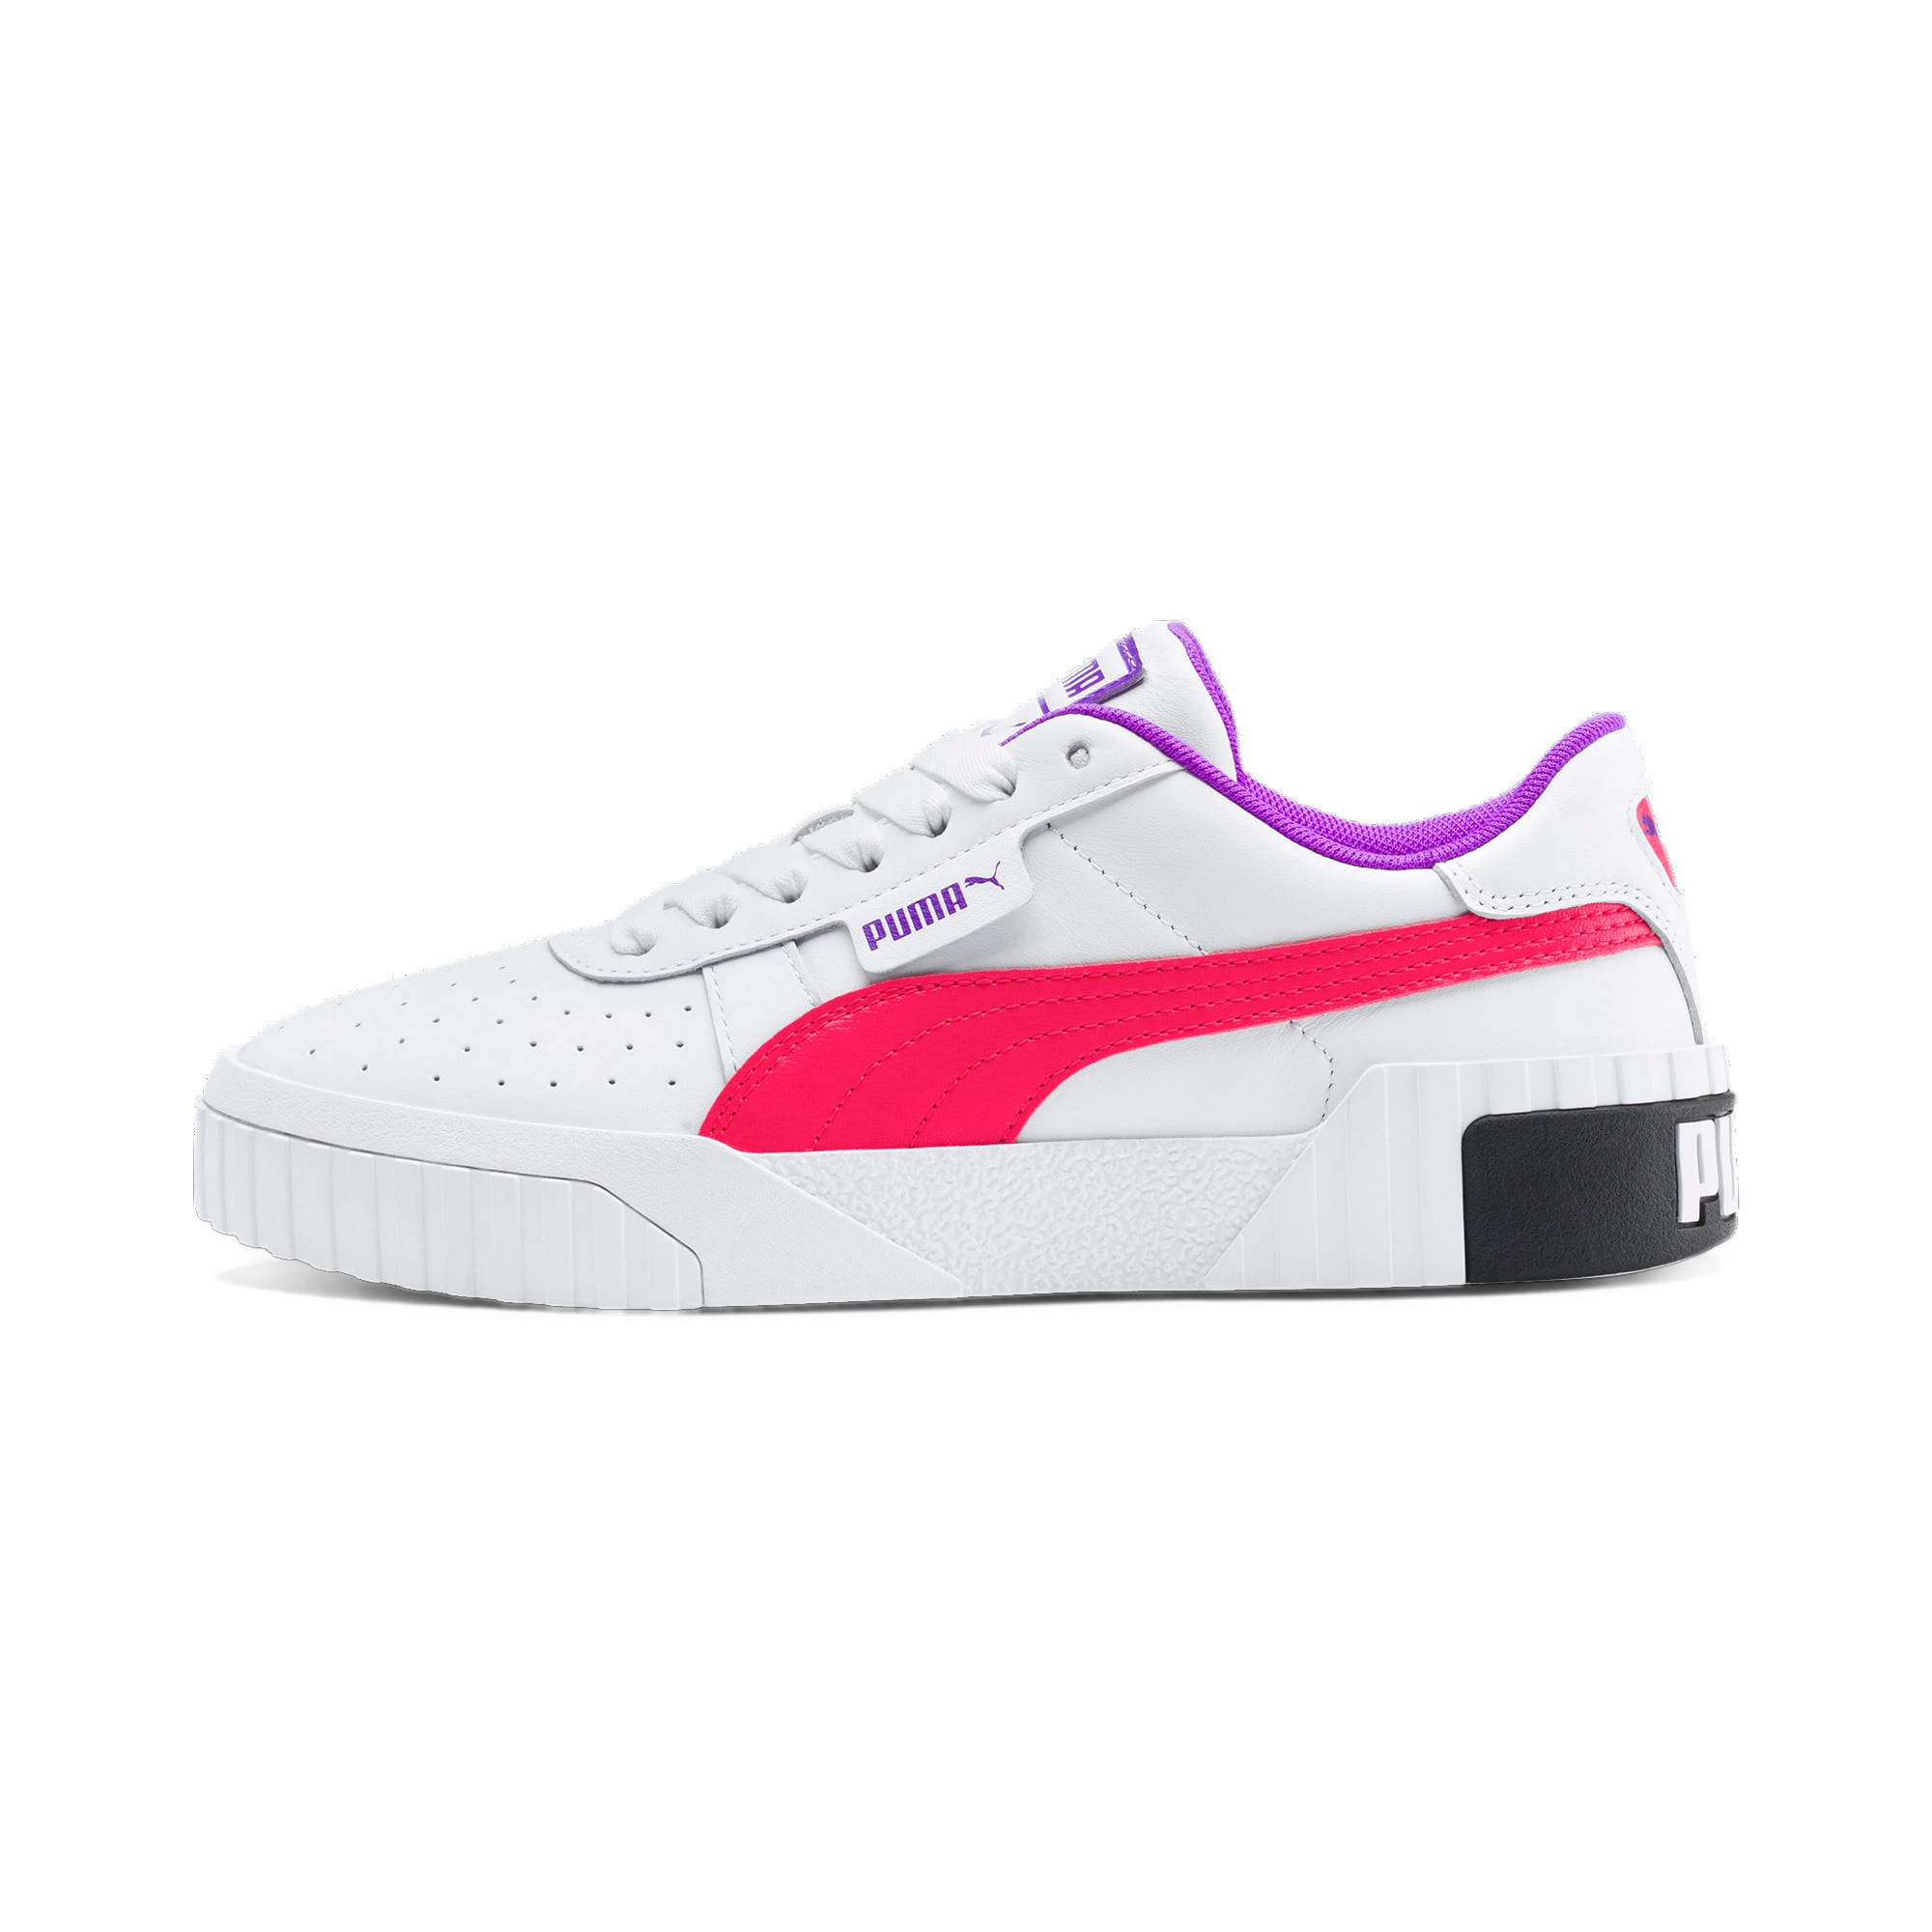 Thumbnail 1 of Cali Chase Women's Training Shoes, Puma White-Nrgy Rose, medium